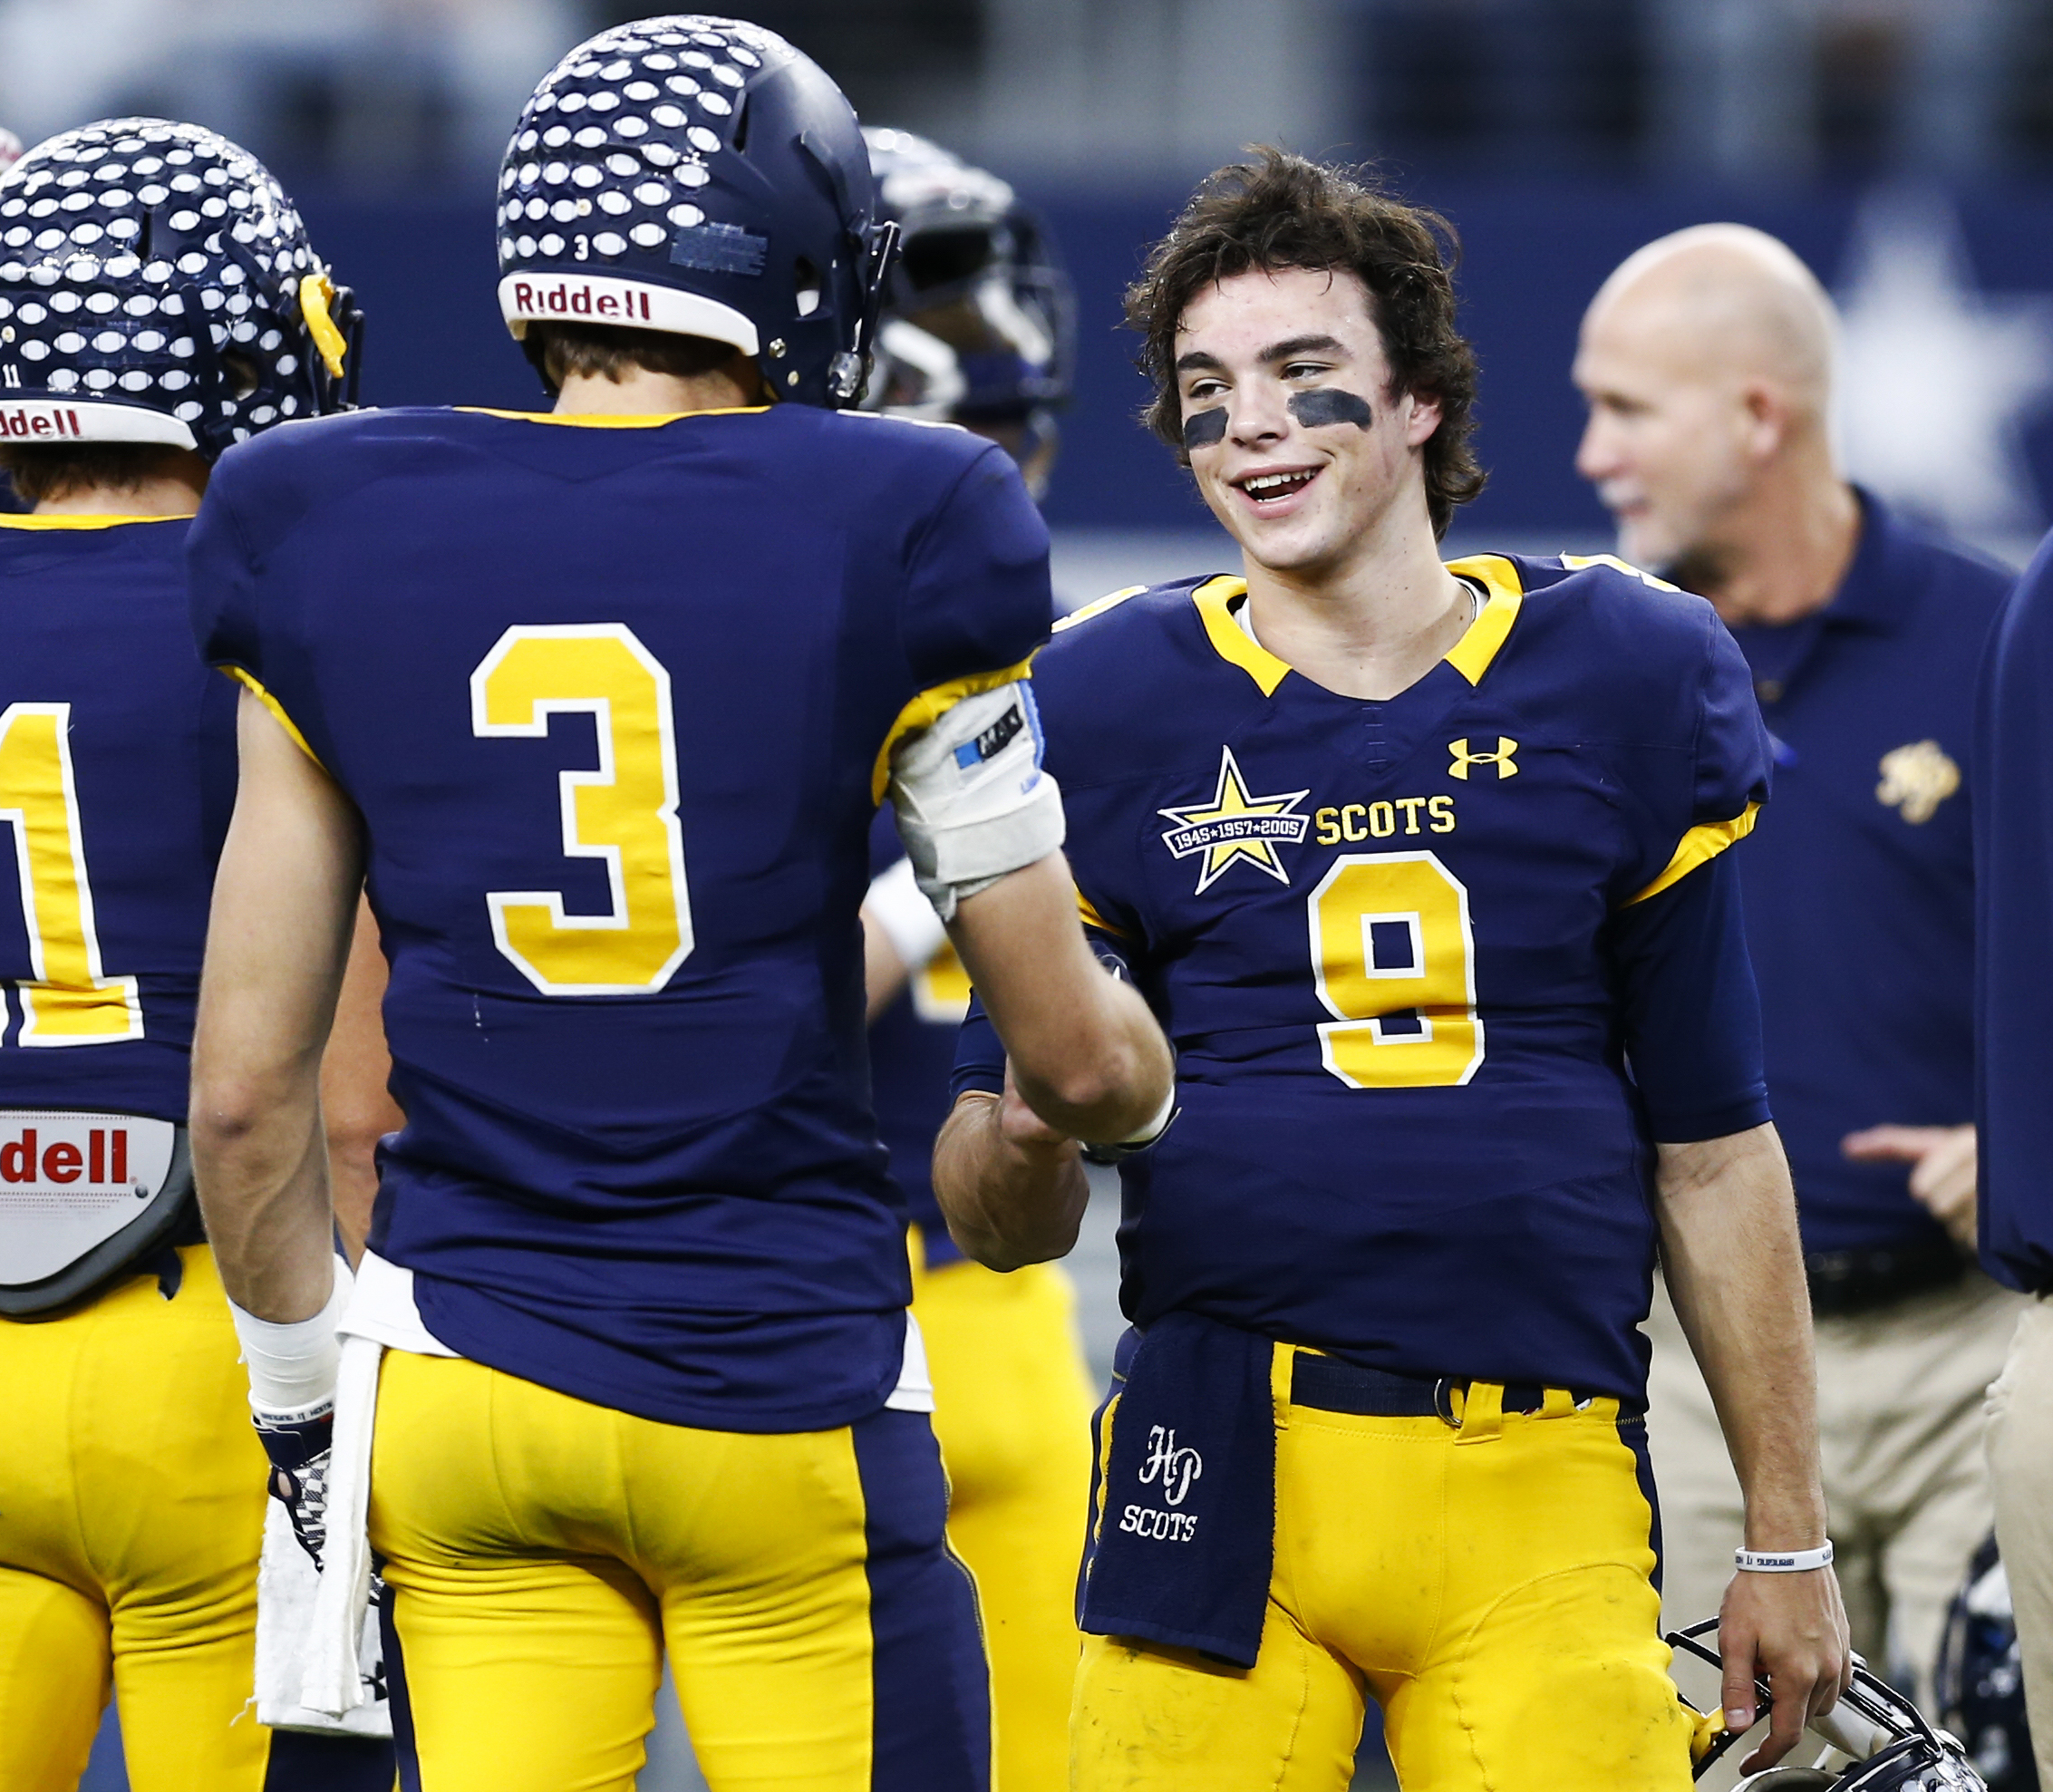 Highland Park quarterback John Stephen Jones (9) greets teammate J.T. Dooley (3) before a UIL Class 5A Division I state championship football game against the Temple, Saturday, Dec. 17, 2016, in Arlington, Texas. John Stephen Jones is the grandson of Dall